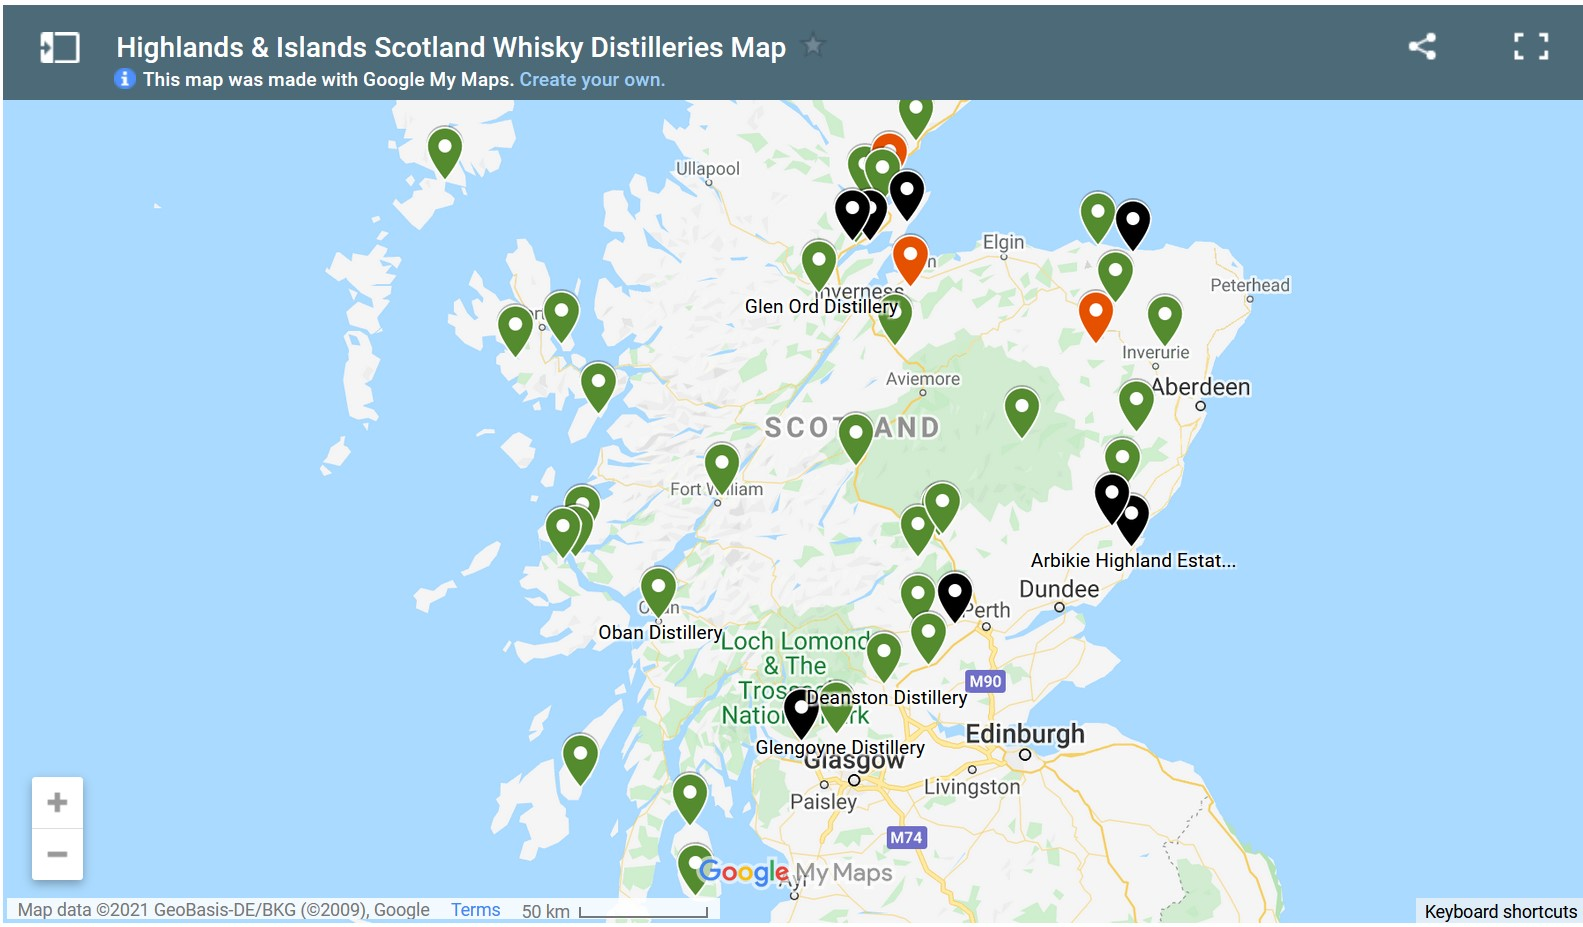 screen capture of Highlands and Islands Scotland Whisky Distillery Interactive Google Map